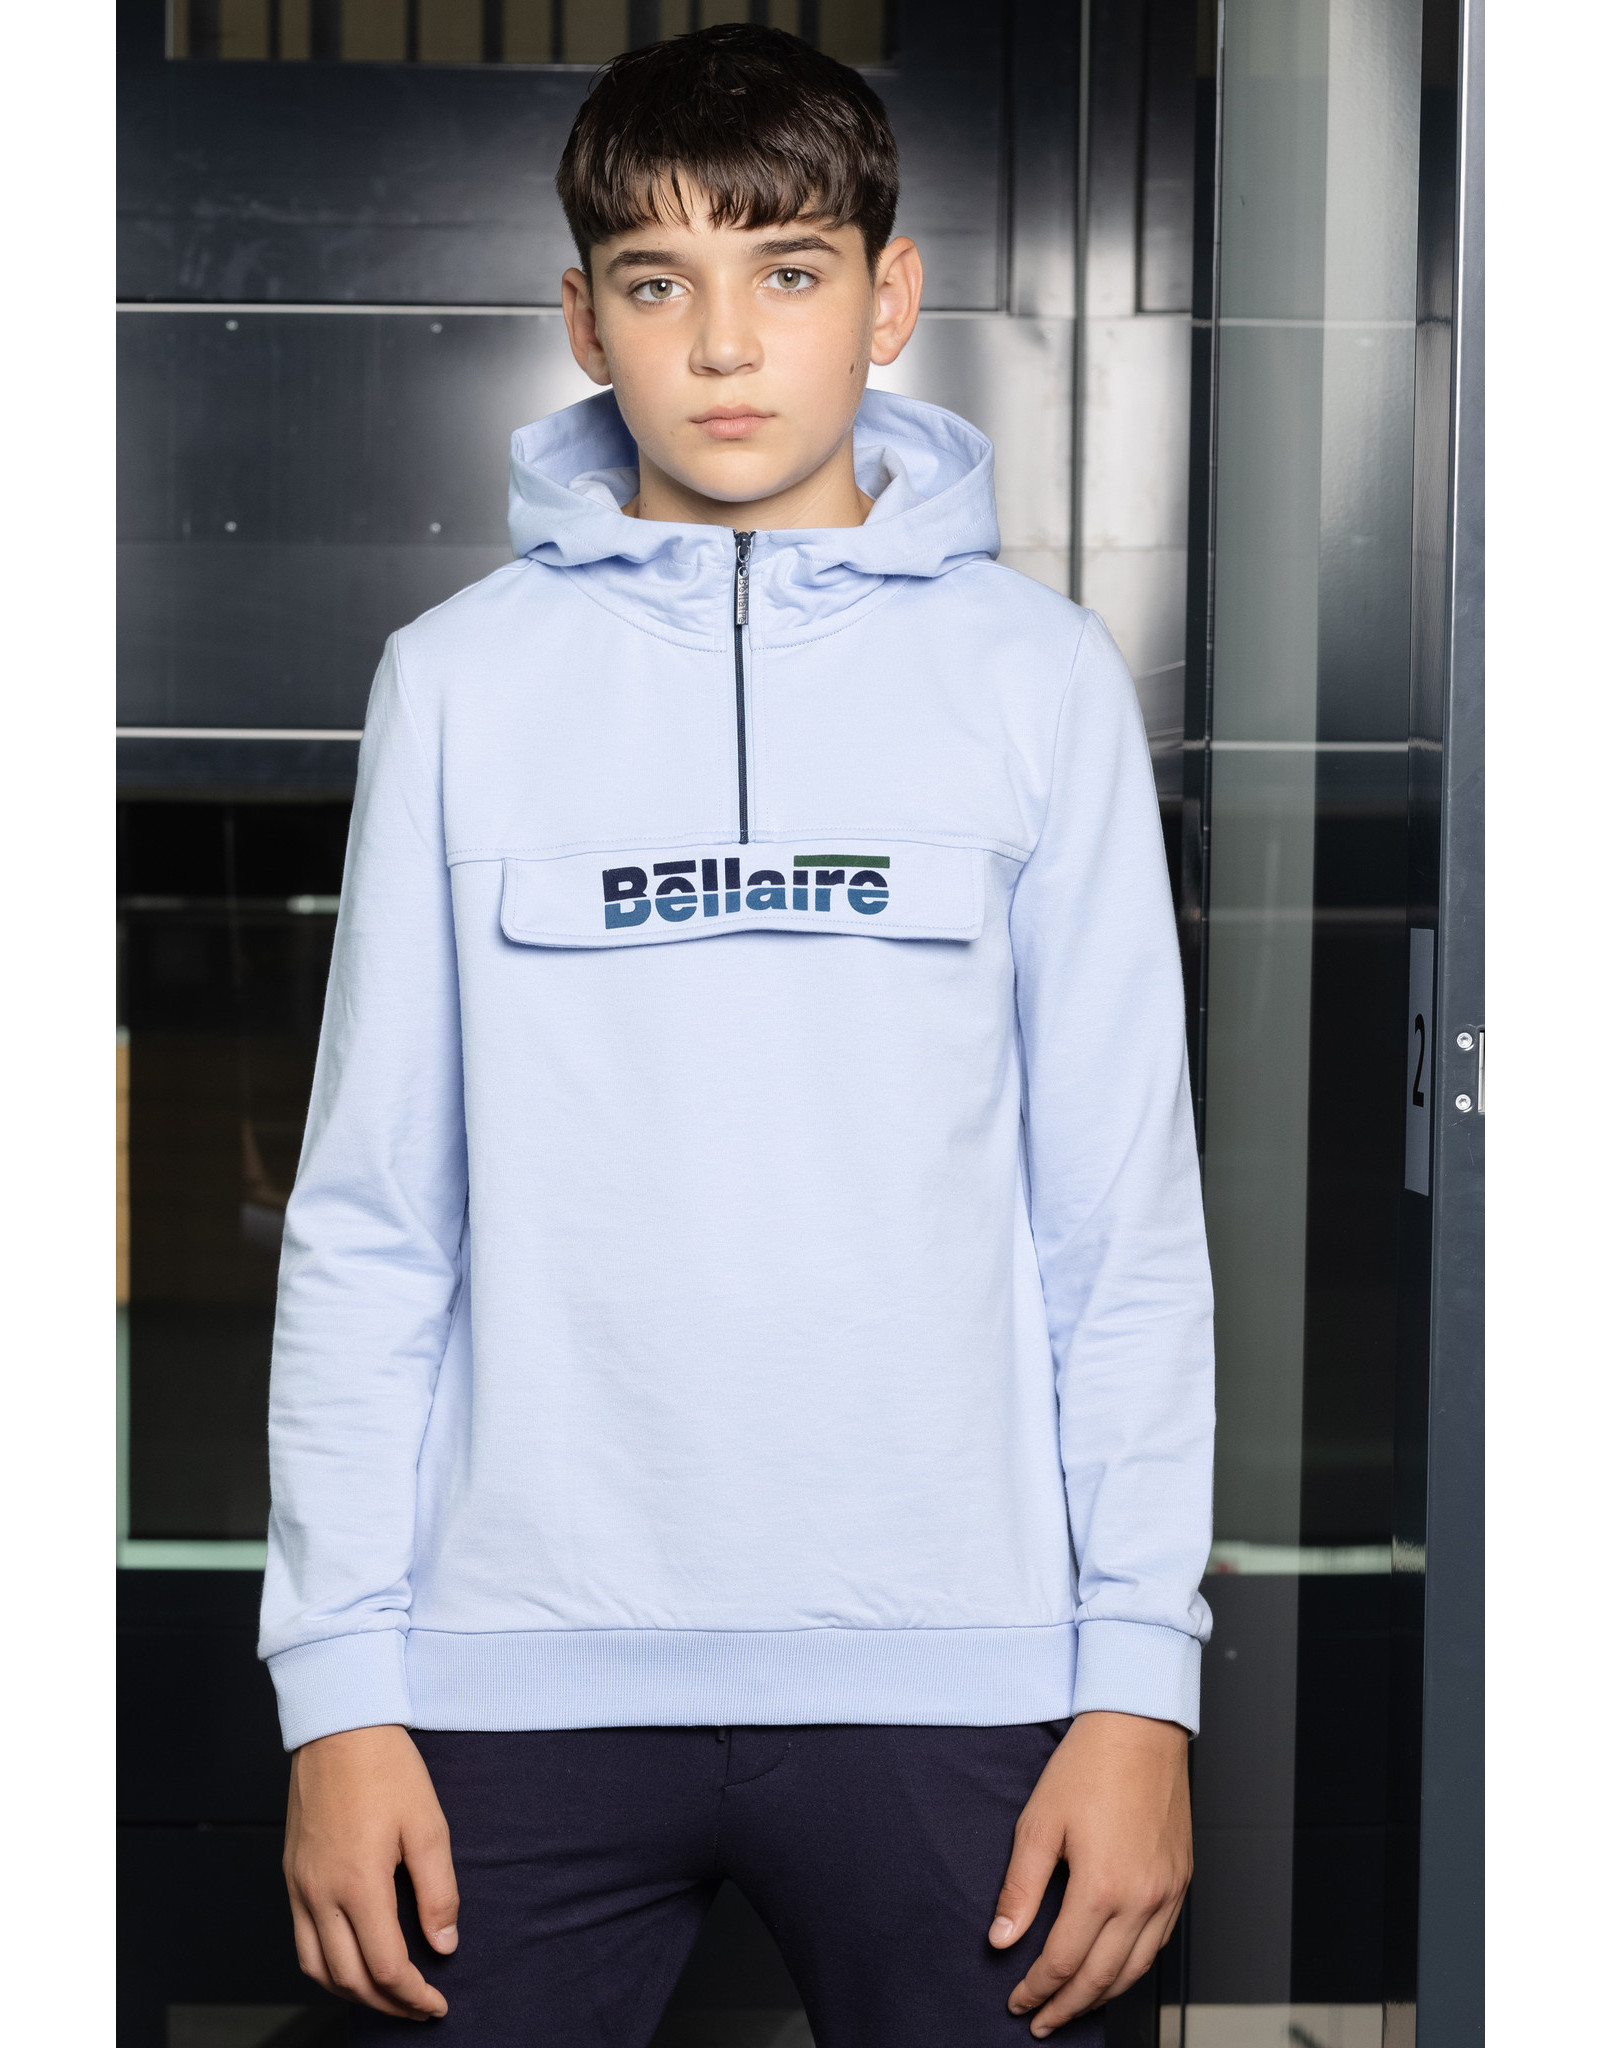 Bellaire Bellaire sweater 4307 air blue